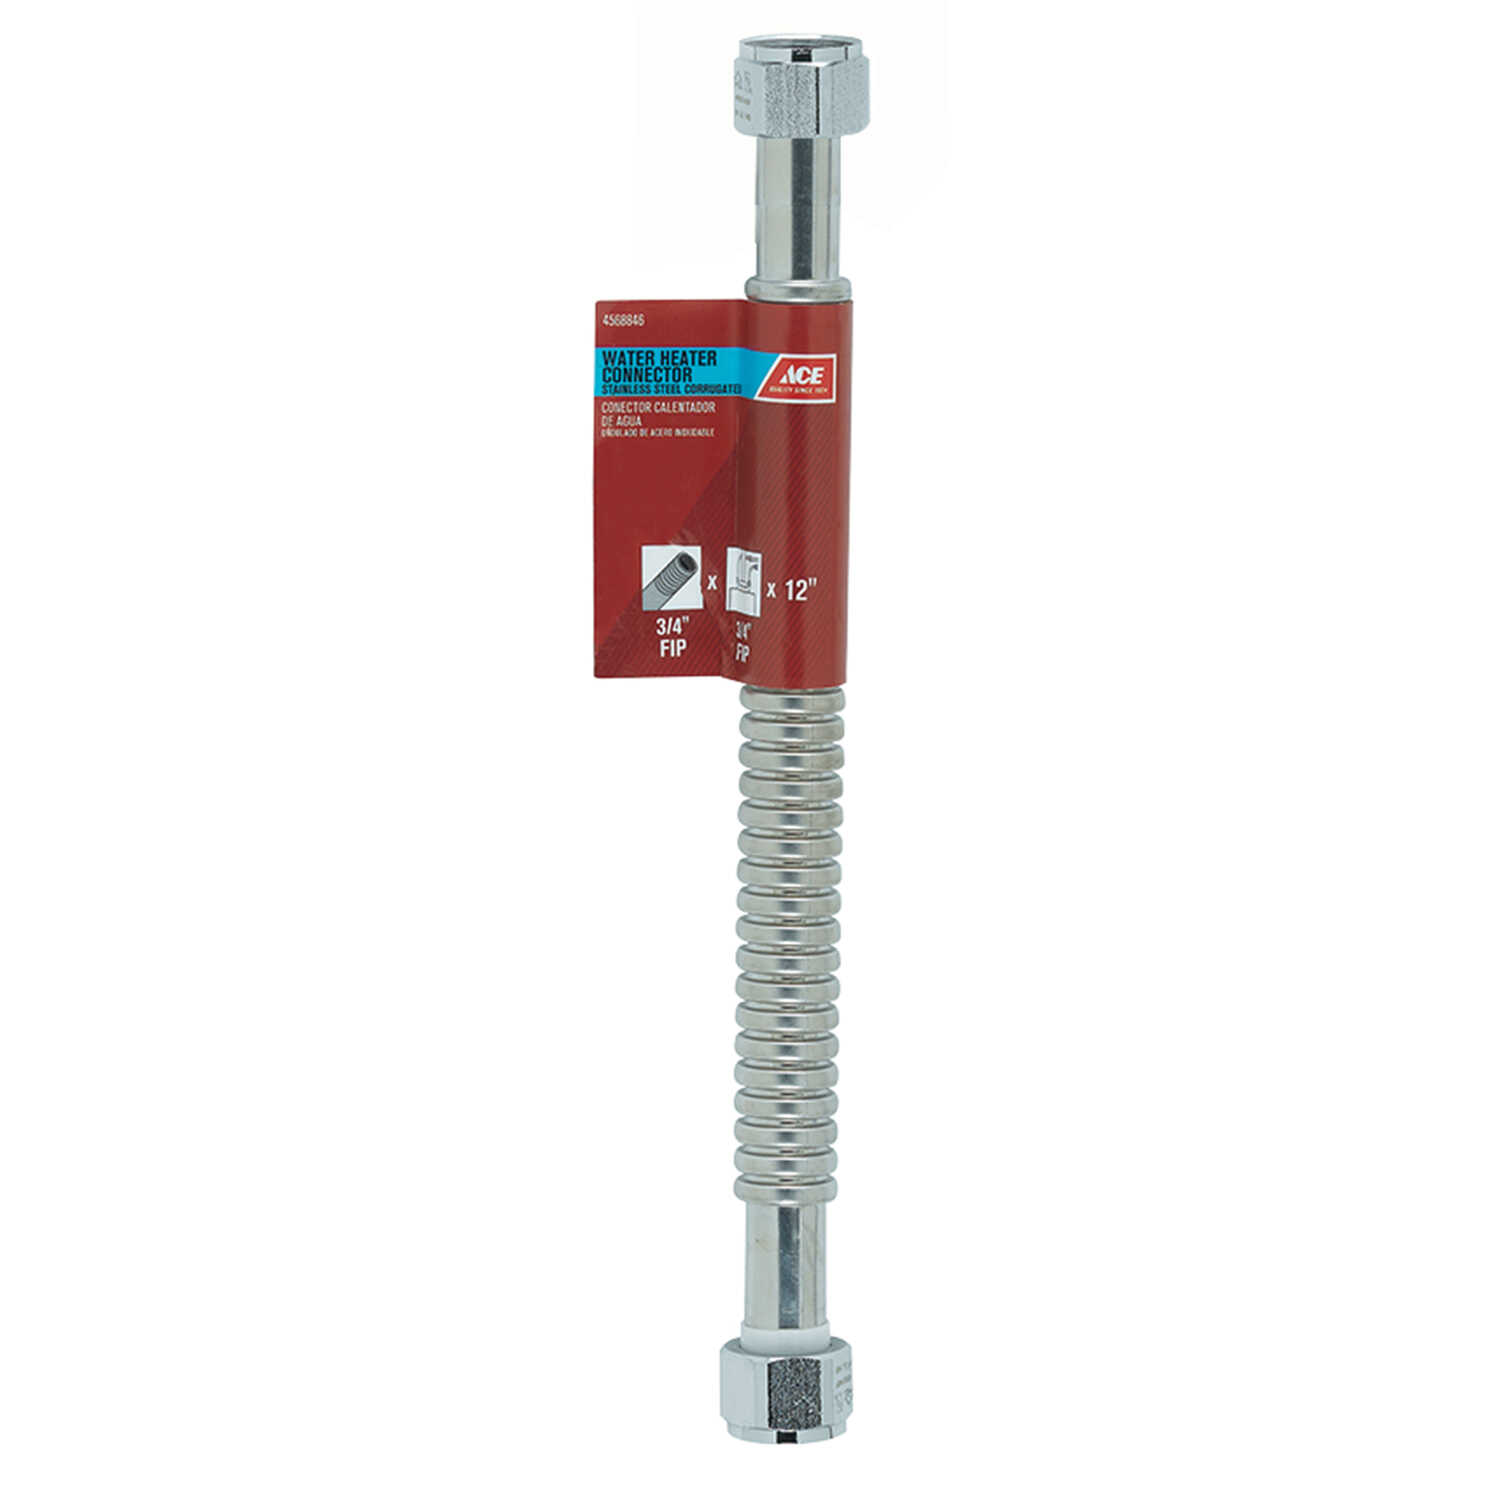 Ace  3/4 in. FIP   x 3/4 in. Dia. FIP  12 in. Corrugated Stainless Steel  Water Heater Supply Line